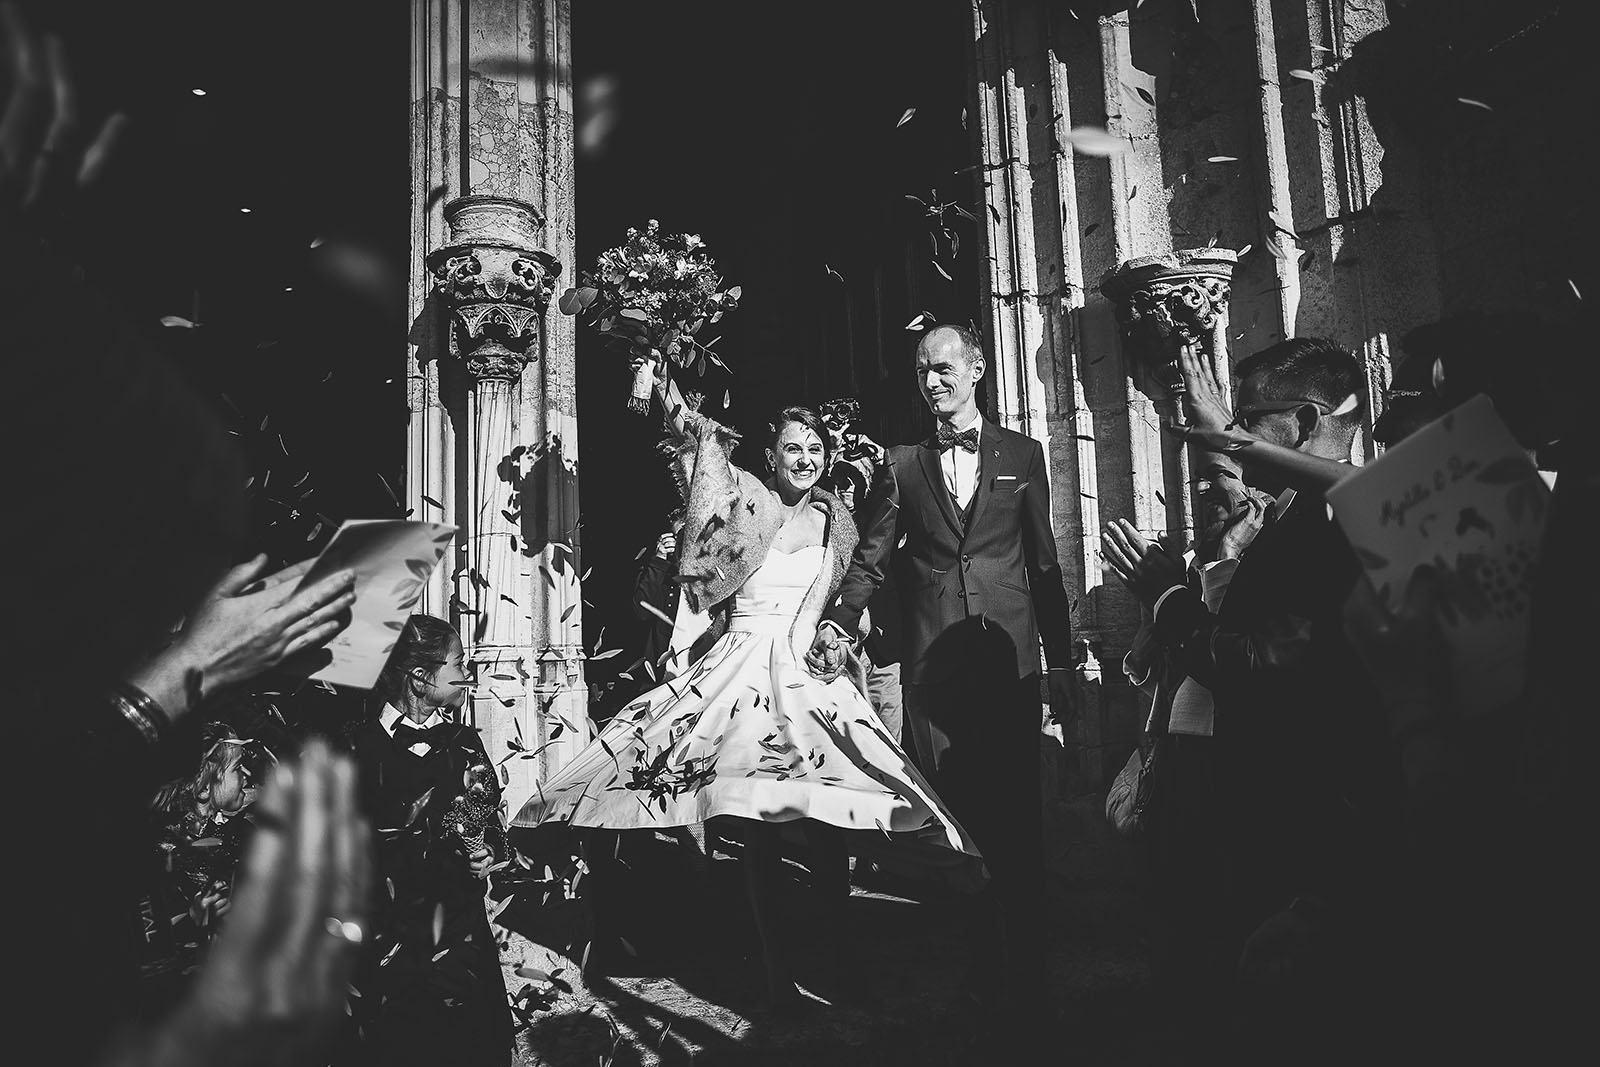 Marriage Prévanches Manor. David Pommier wedding photographer. Nice picture of the exit of the Church of the couple